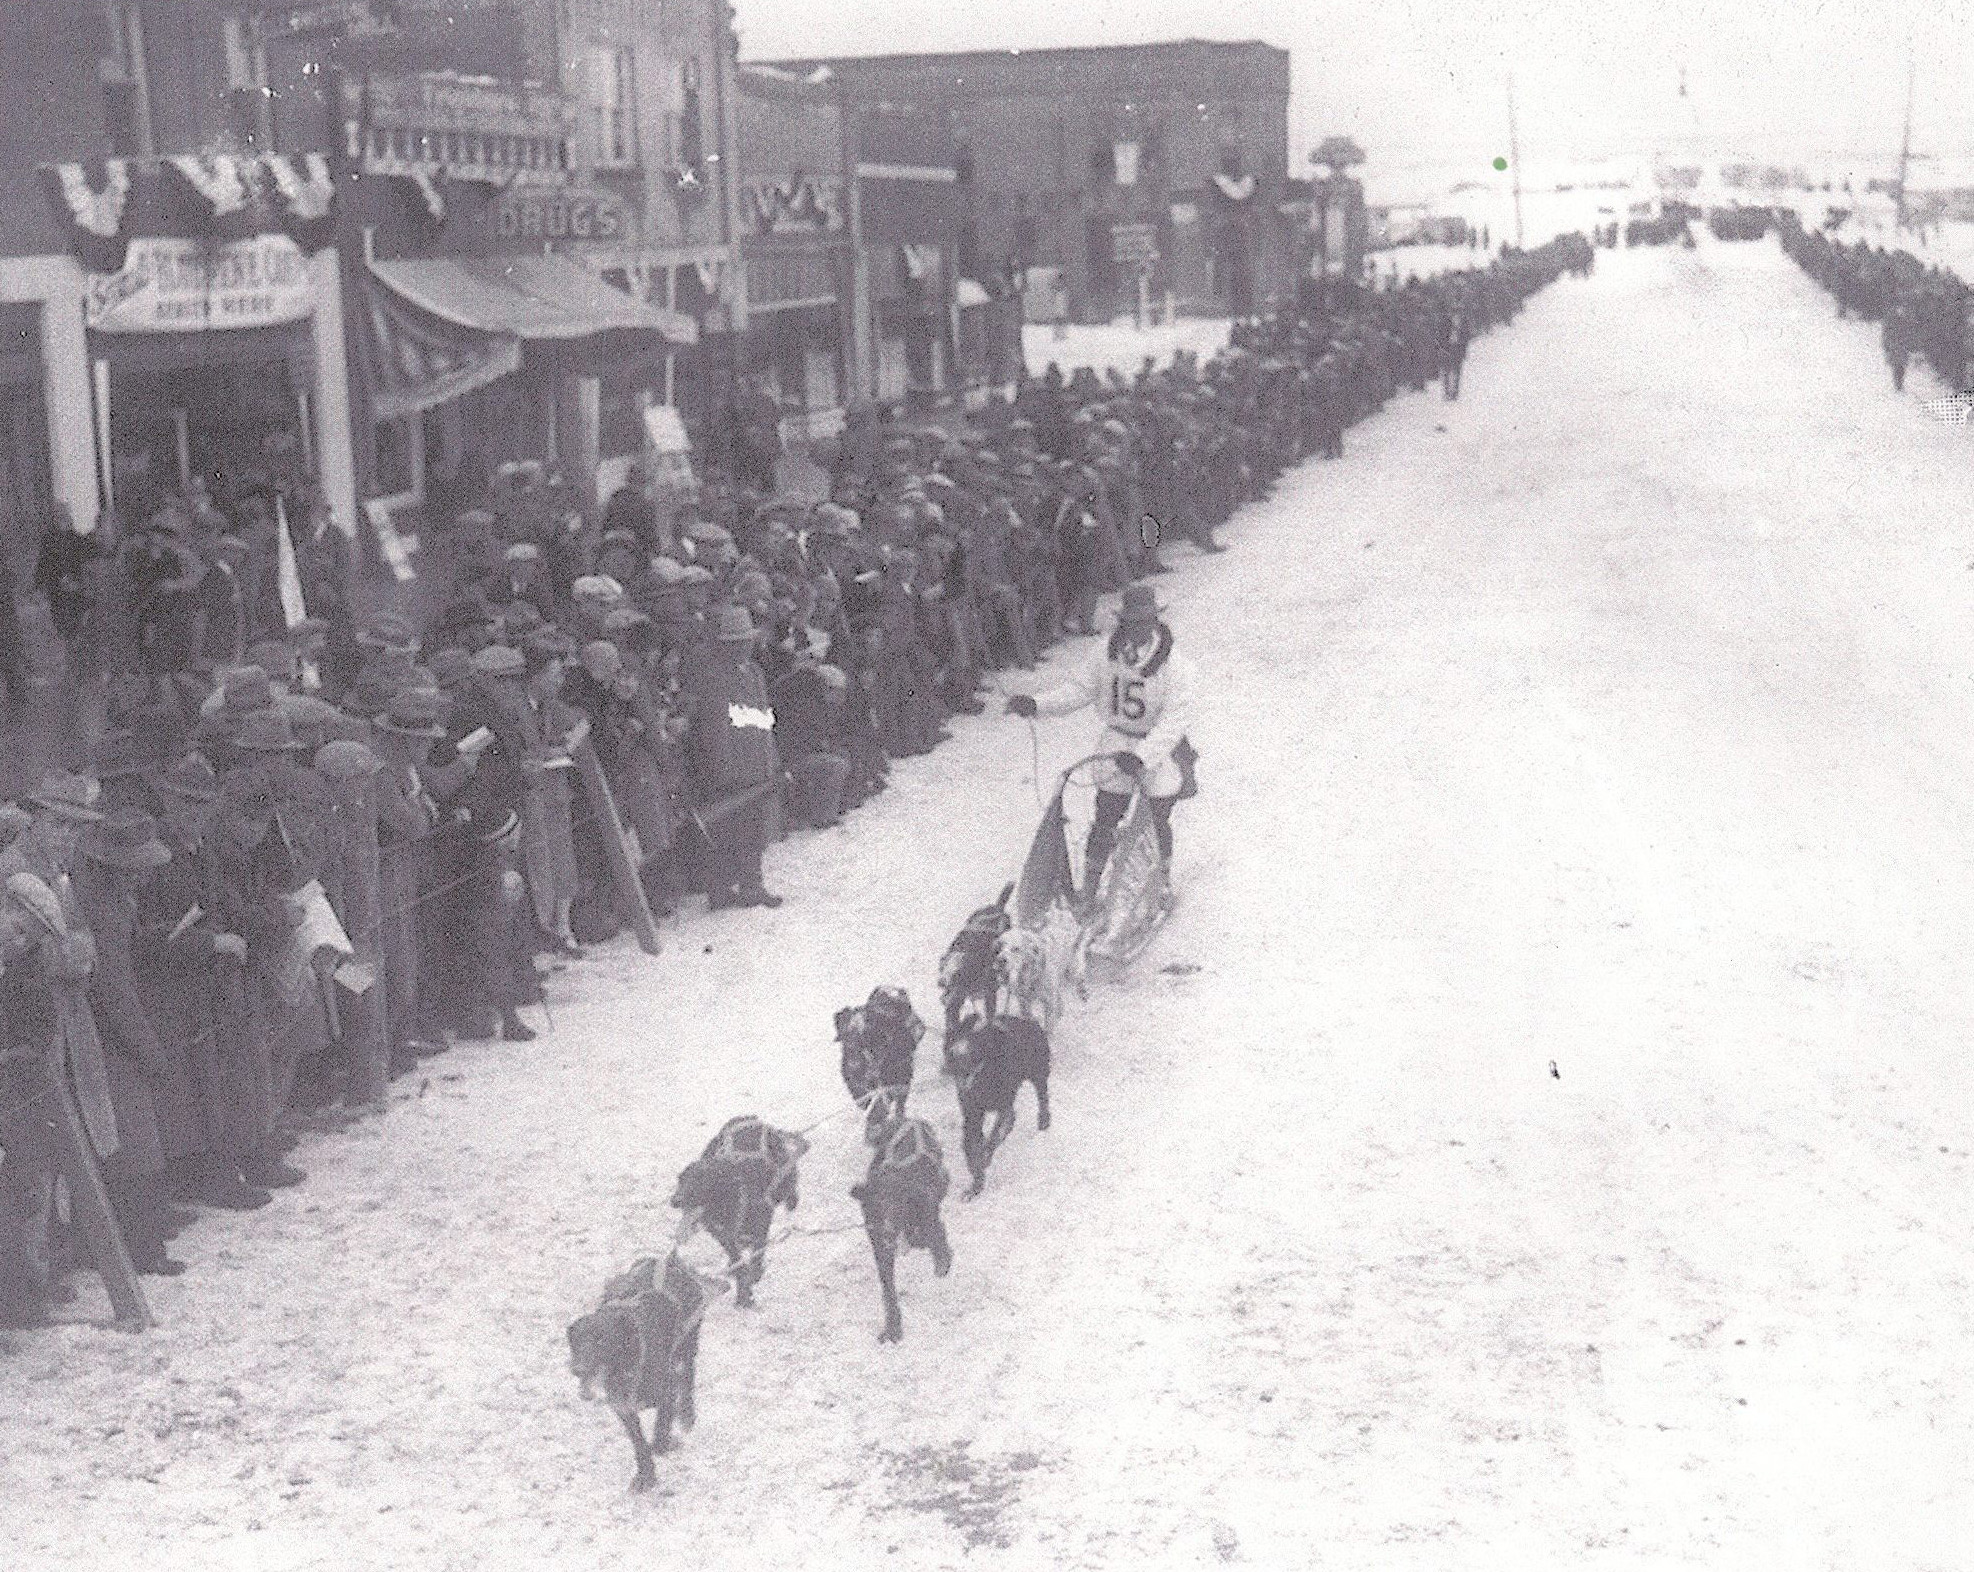 Classic Shot of Huge Crowds and Musher